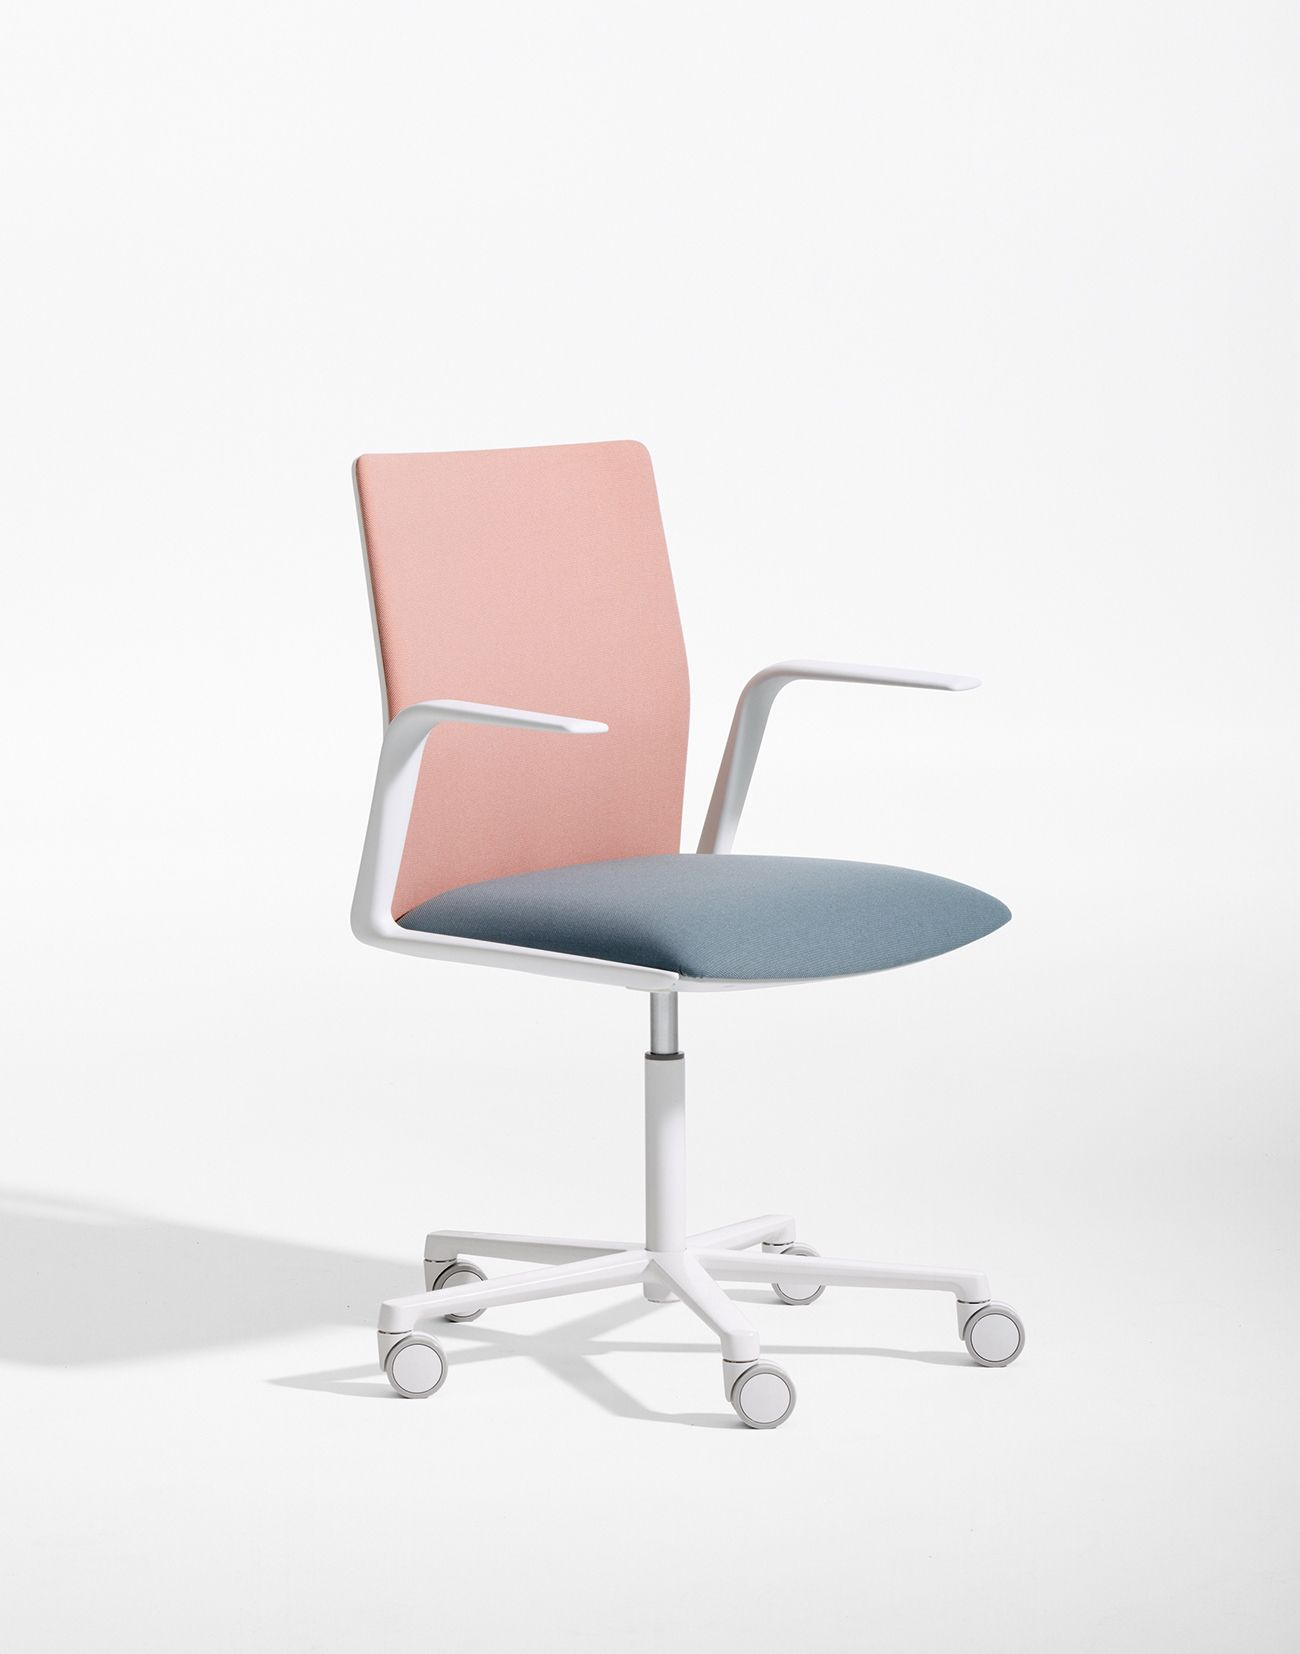 Adjustable Desk Chair Without Wheels 35 Unexpectedly Chic Pieces For An Un Boring Office